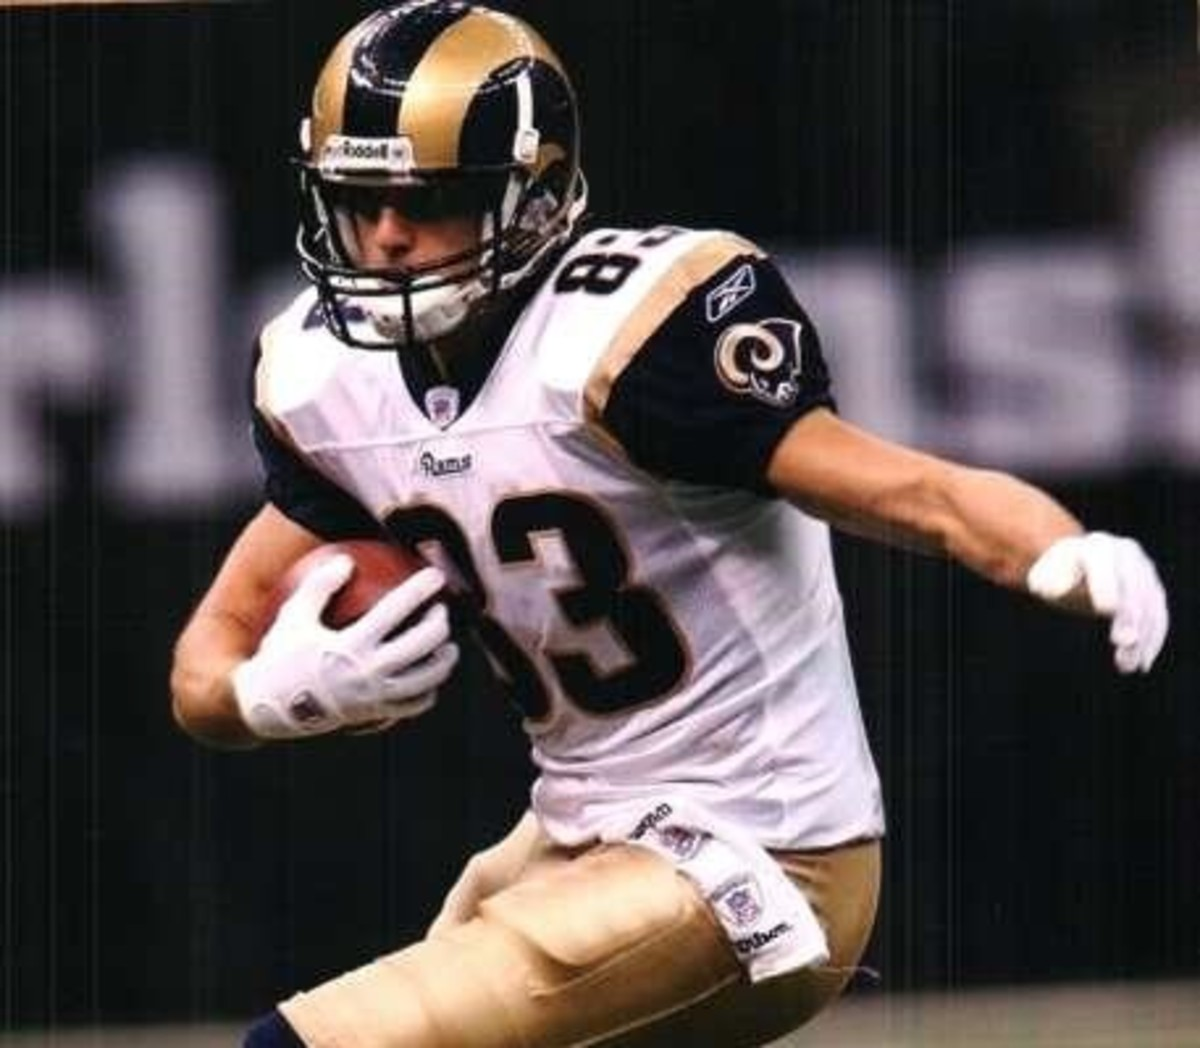 Los Angeles Rams: Drew Bennett